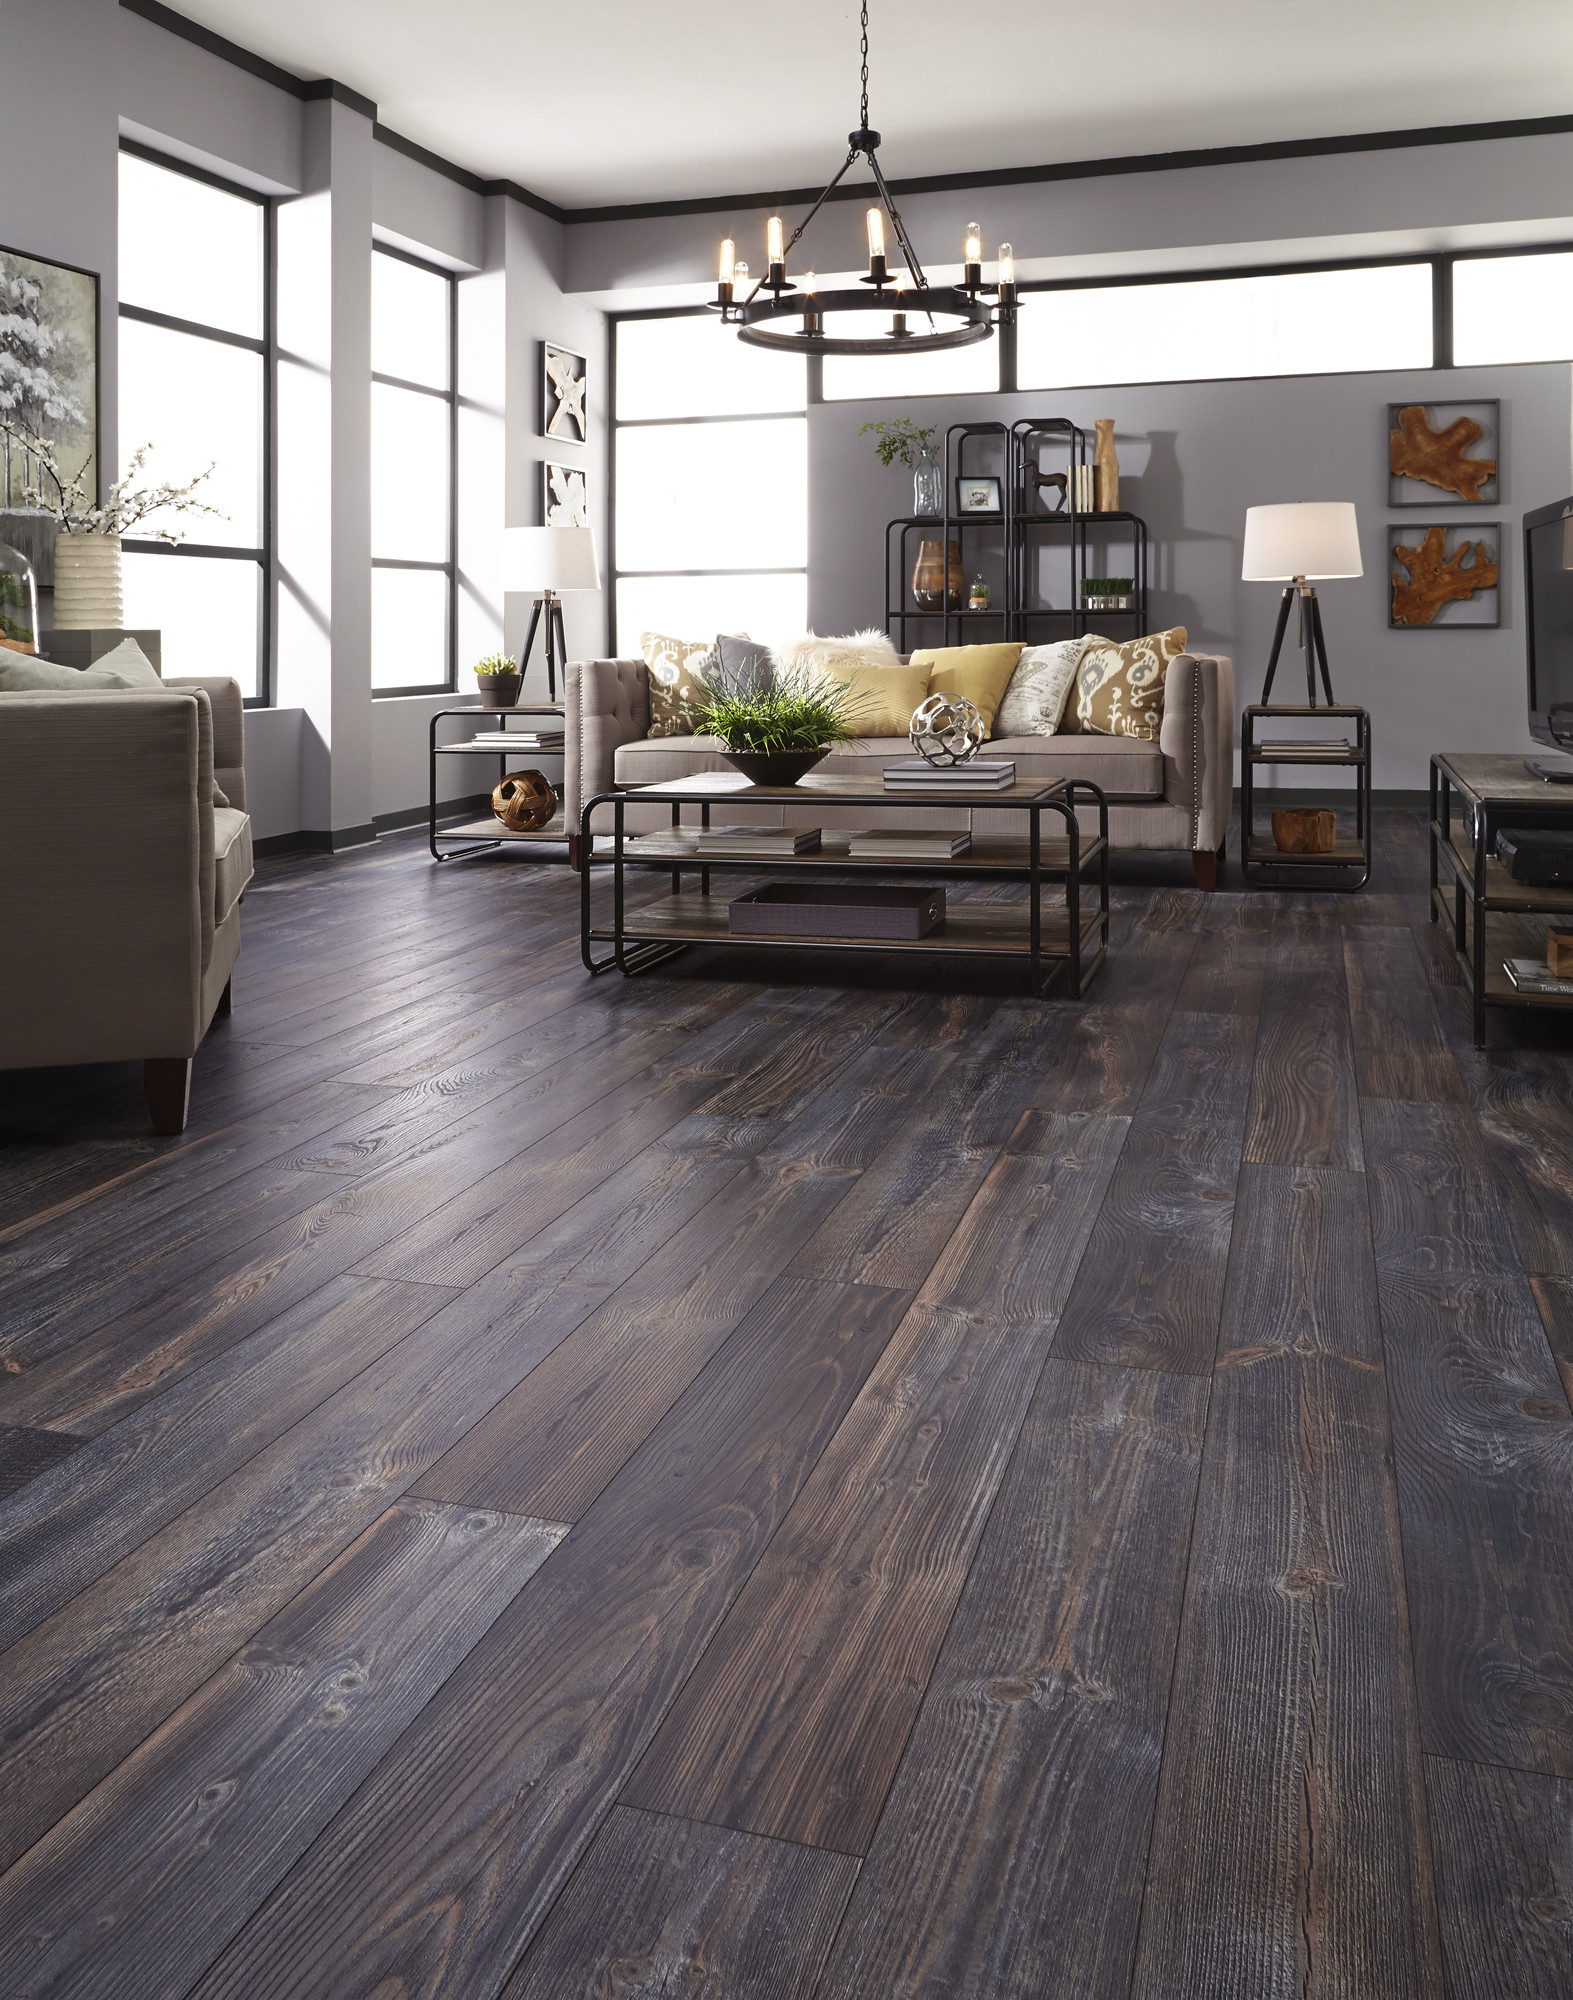 hardwood floor installation kalamazoo of breathtaking lumber liquidators hardwood flooring beautiful floors throughout breathtaking lumber liquidator hardwood flooring memphi laminate floor tulsa installation for less cost video formaldehyde recall